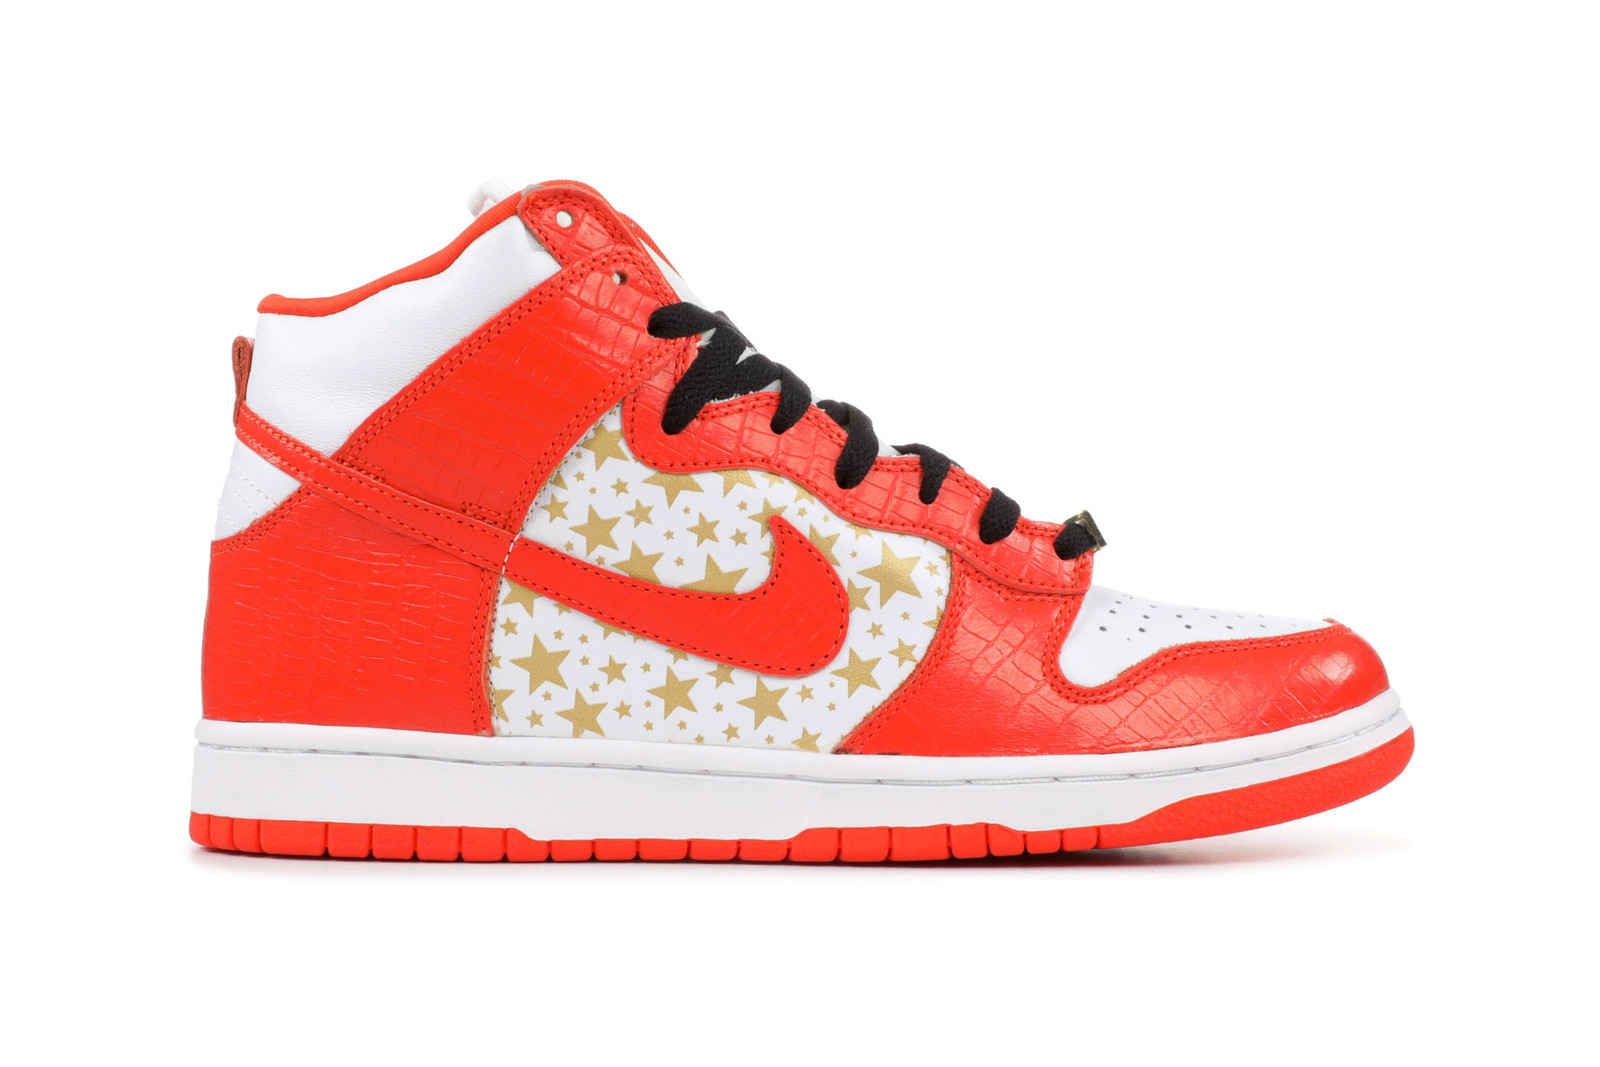 premium selection 4be74 46b96 Supreme Nike SB Nike Dunk Low Pro SB Supreme Nike Dunk High Pro SB Supreme  Nike